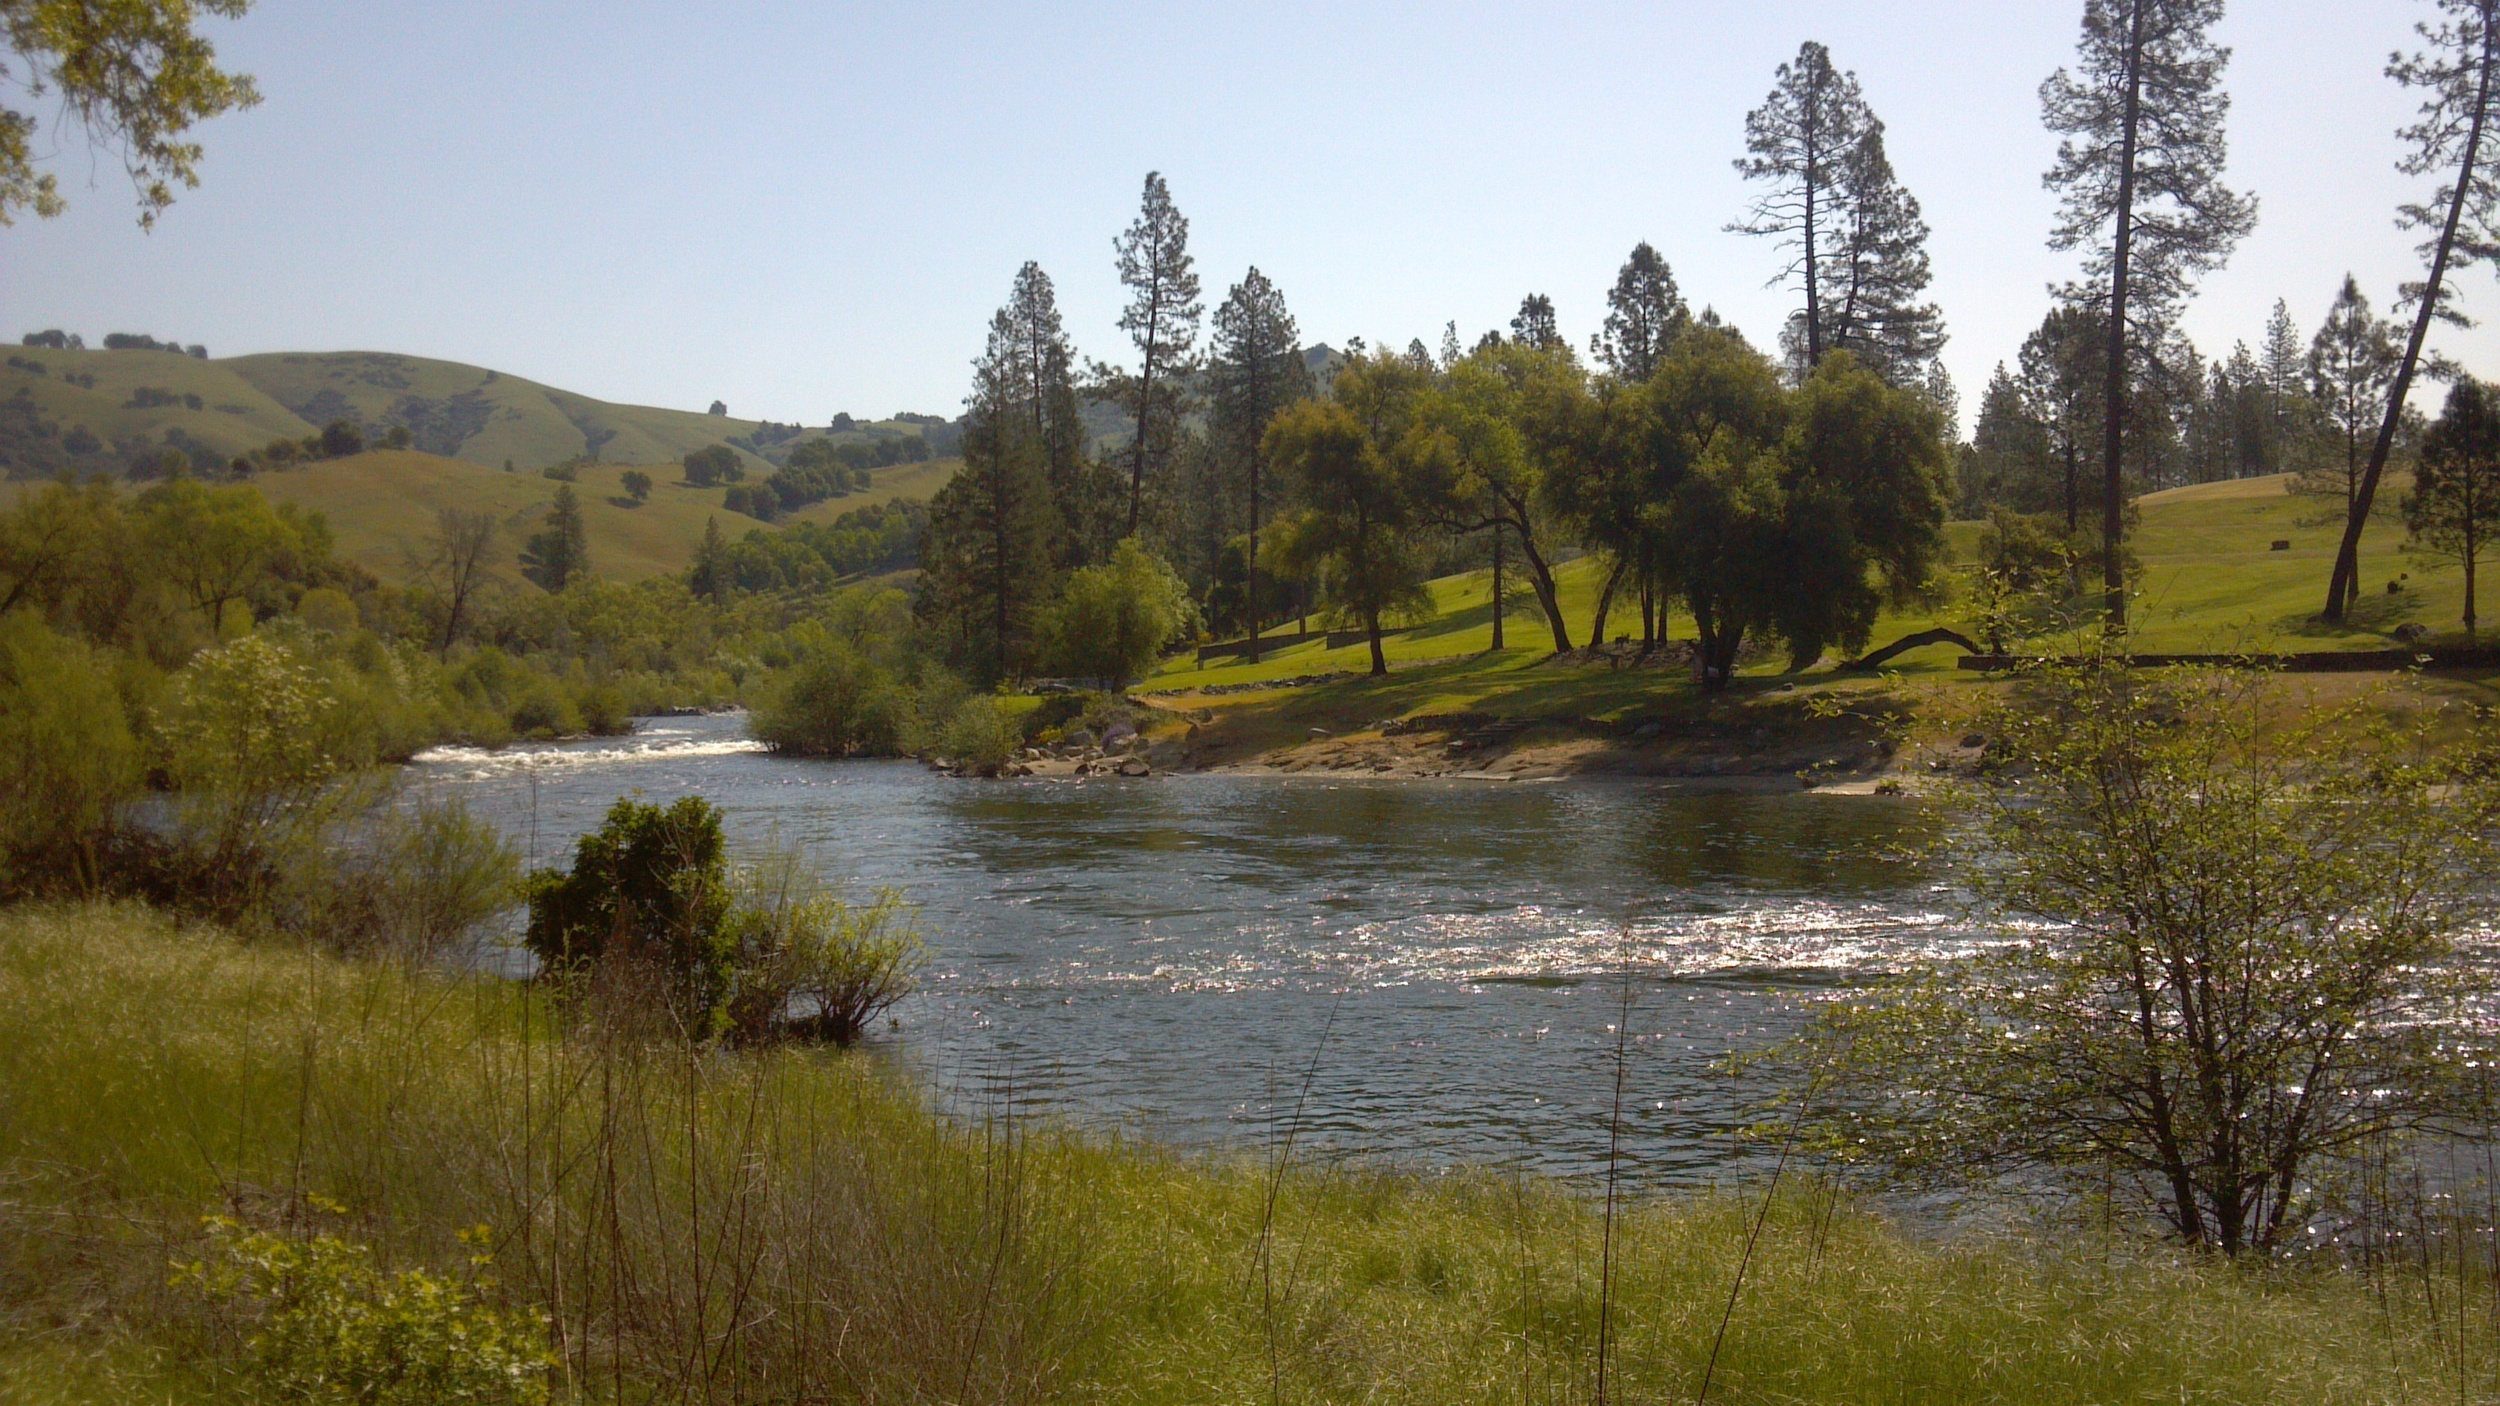 The American River where gold was discovered in Sutters Mill, California. Photo Larry Atkins